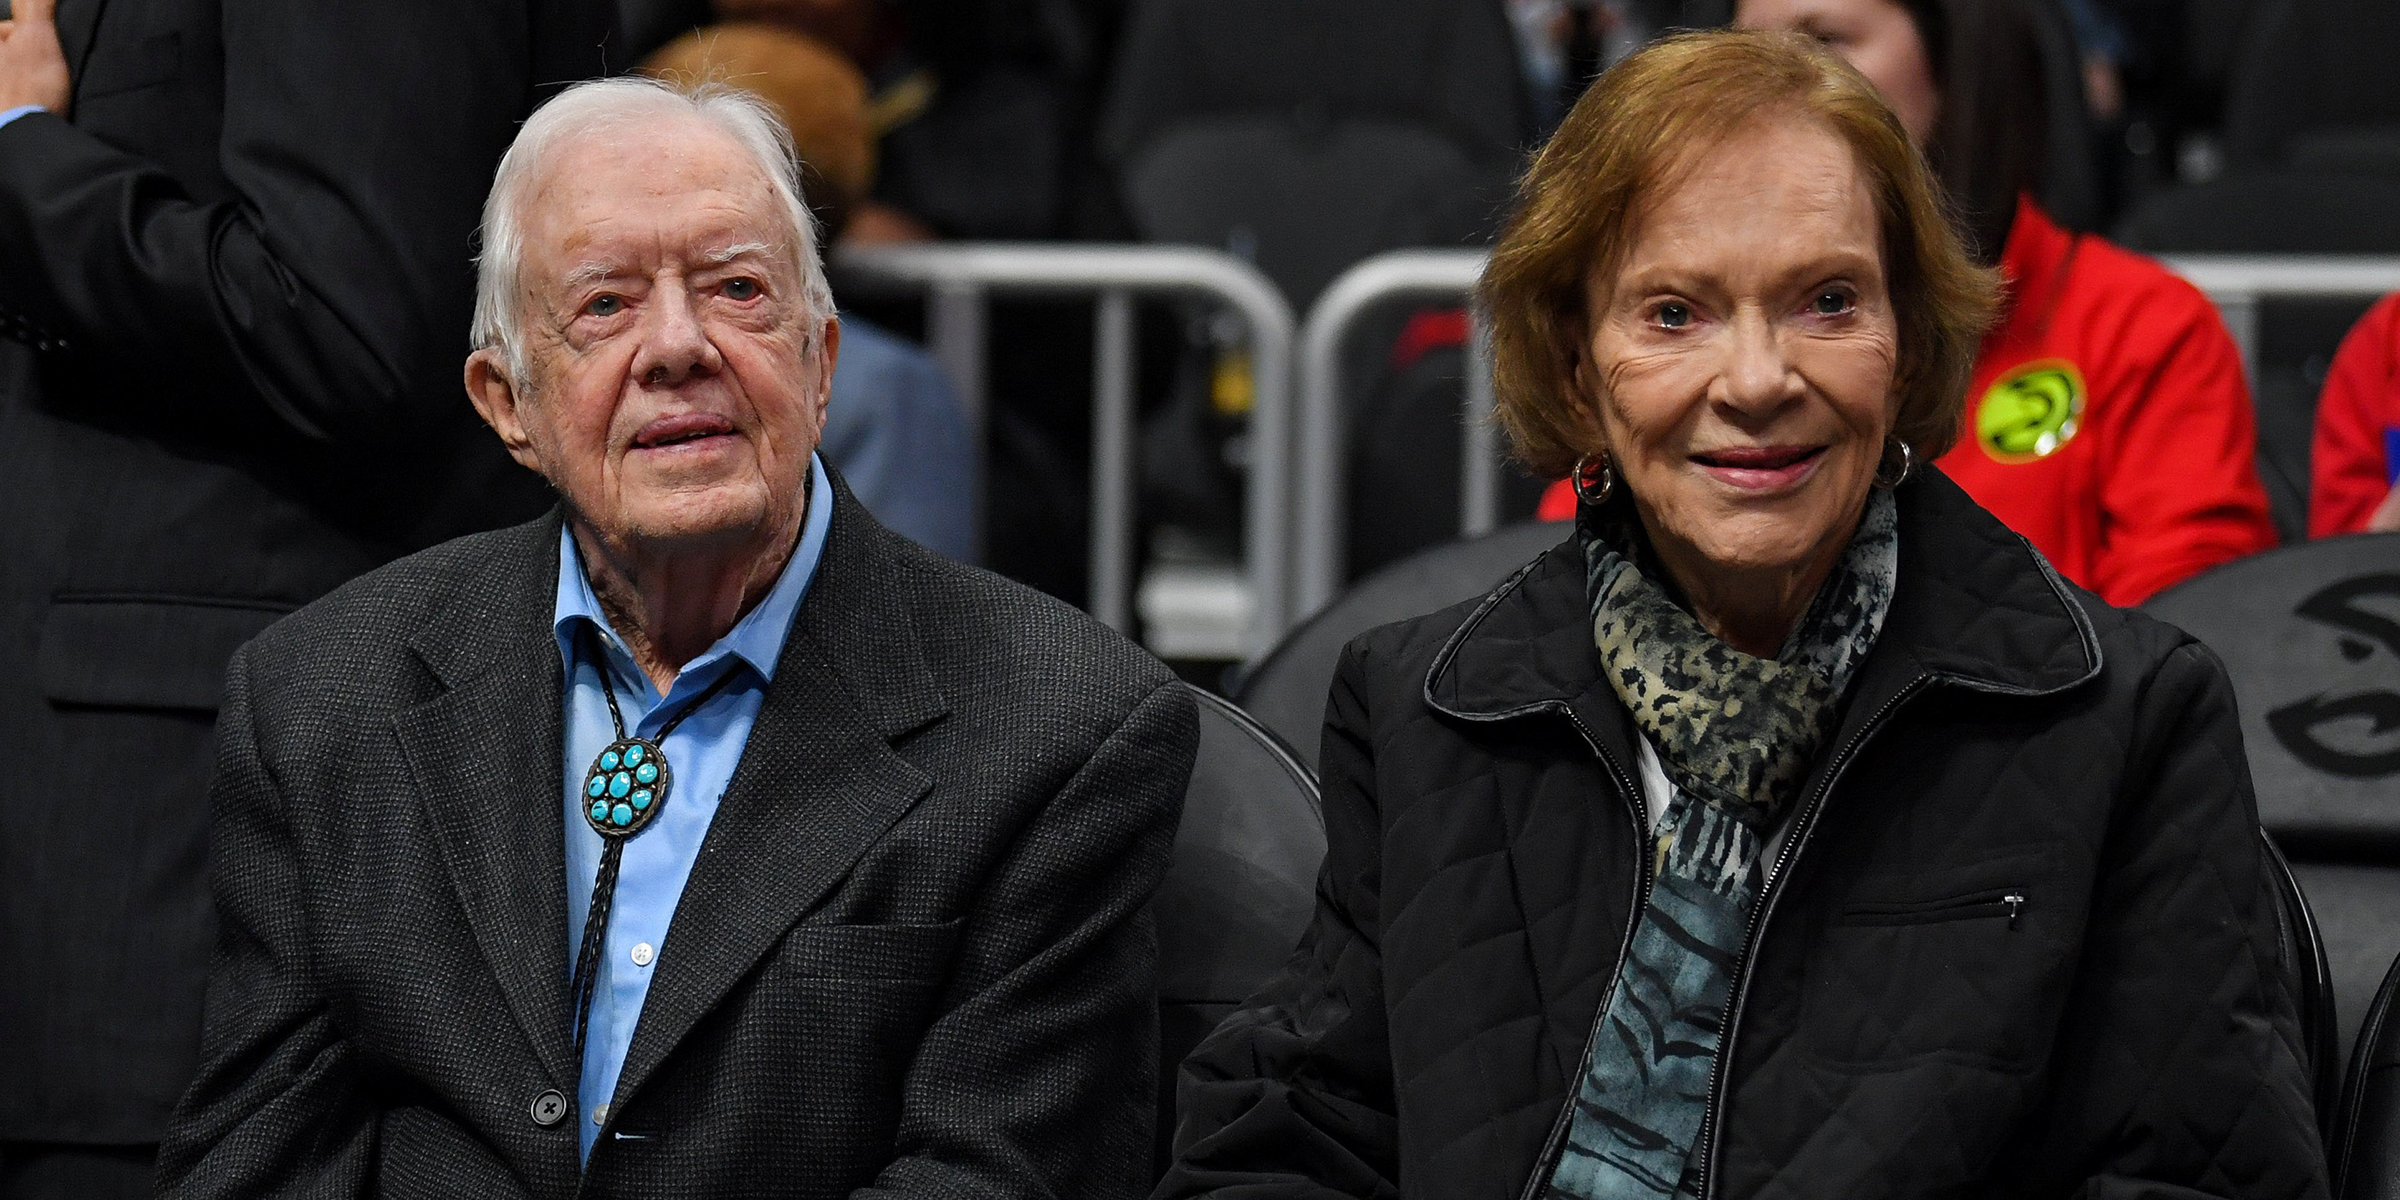 Jimmy And Rosalynn Carter Are Now The Longest Married Presidential Couple